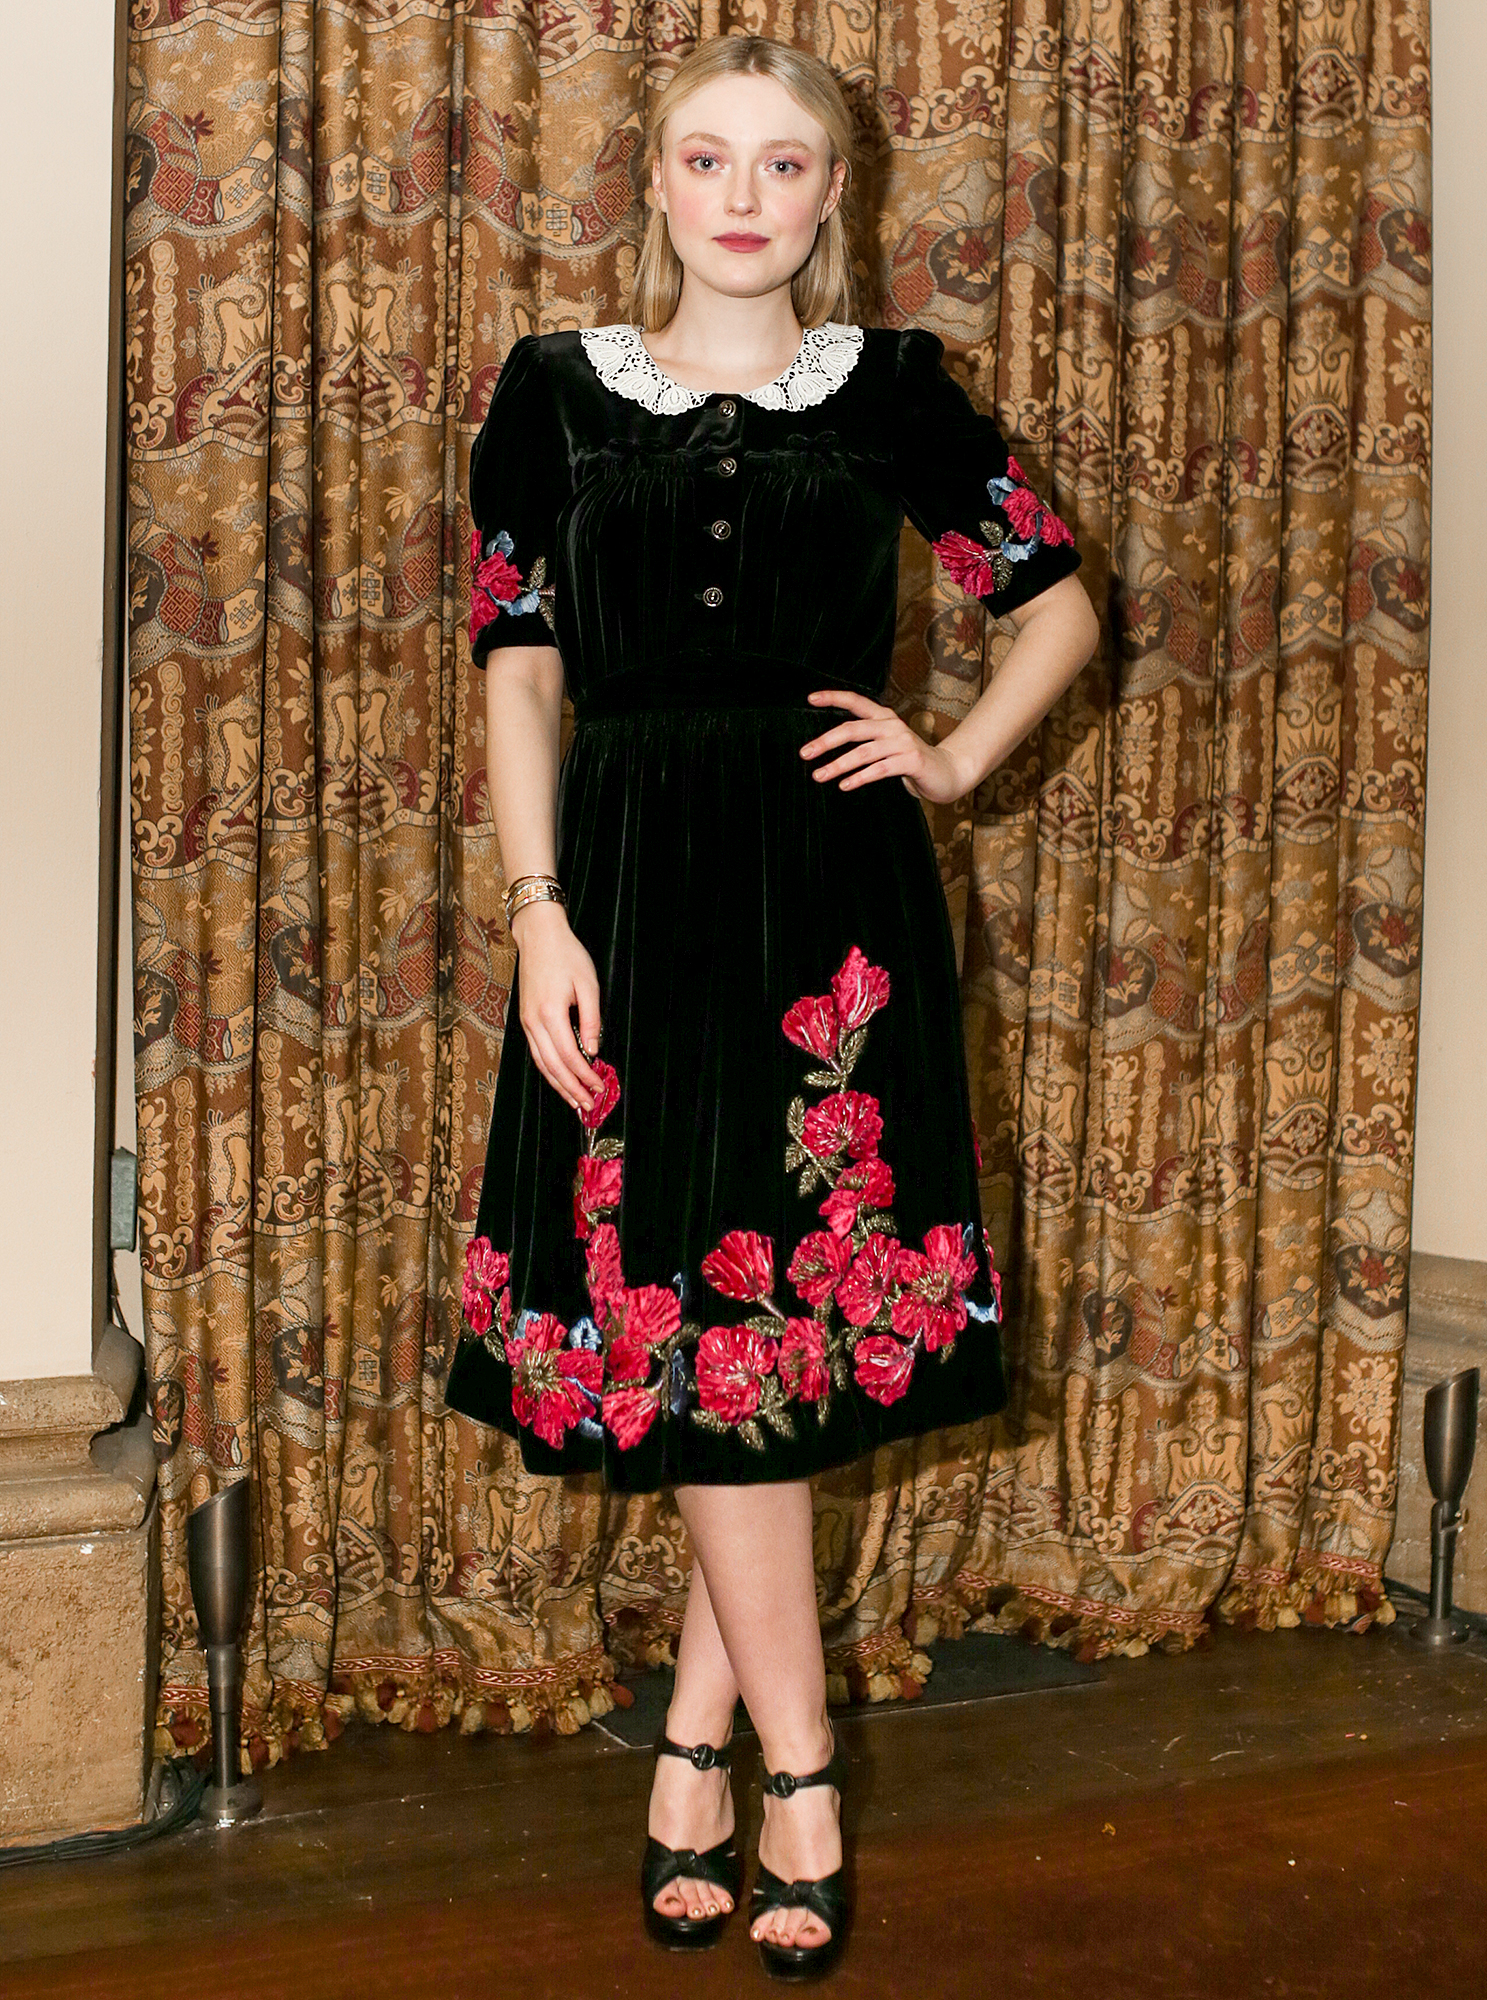 Dakota Fanning Stunned in a Floral Print Dress While Hosting the 'Eat the Sun' Book Launch Party With Gucci